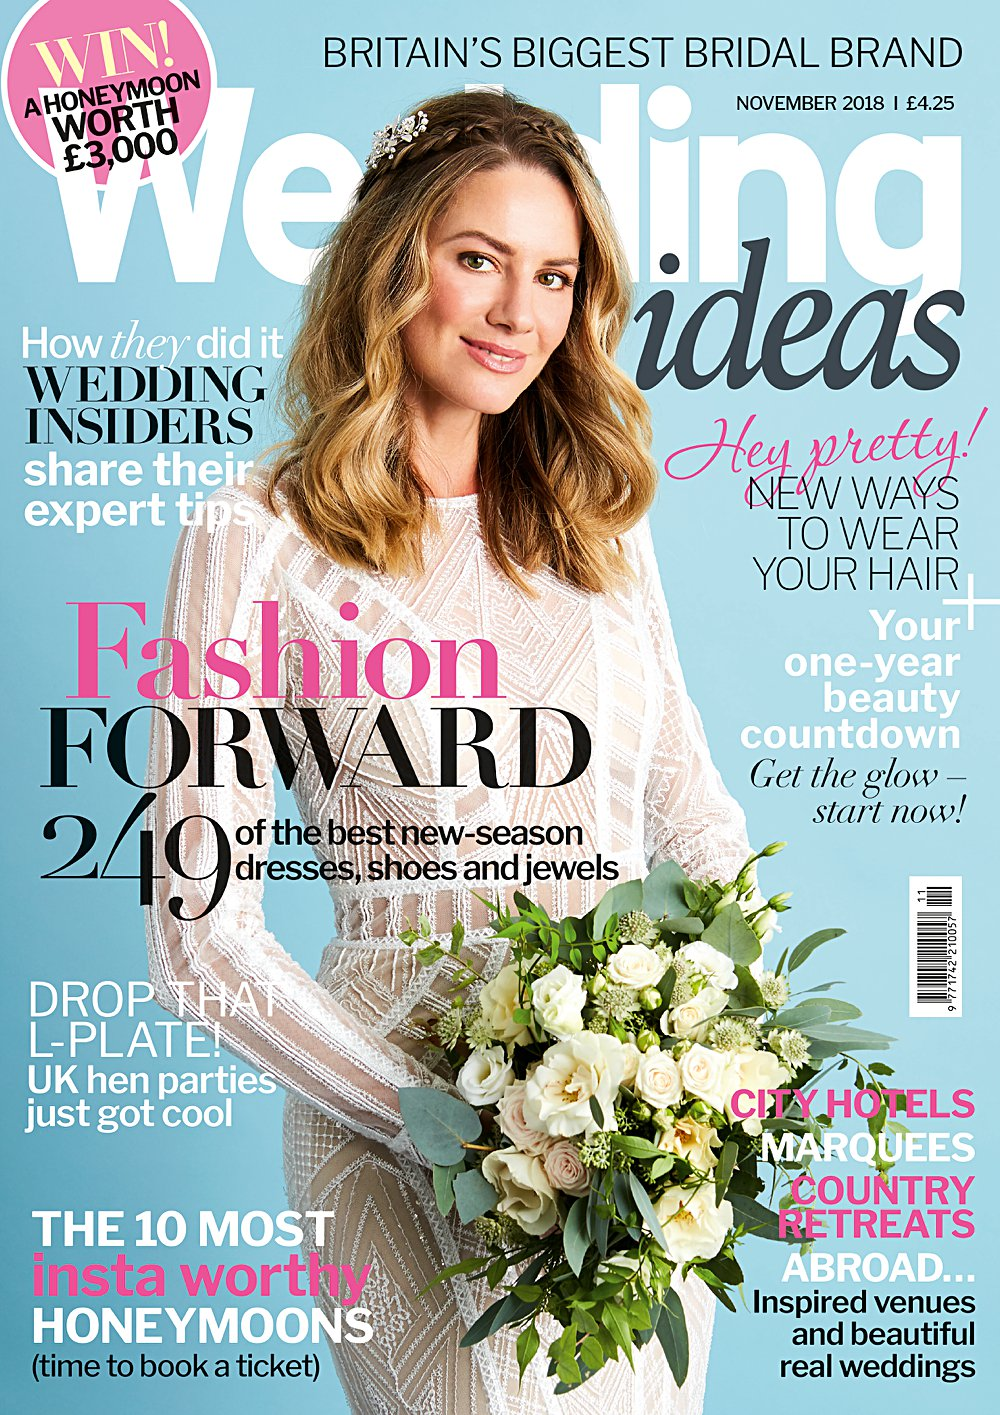 The March cover of Wedding Ideas styled by Pierre Carr